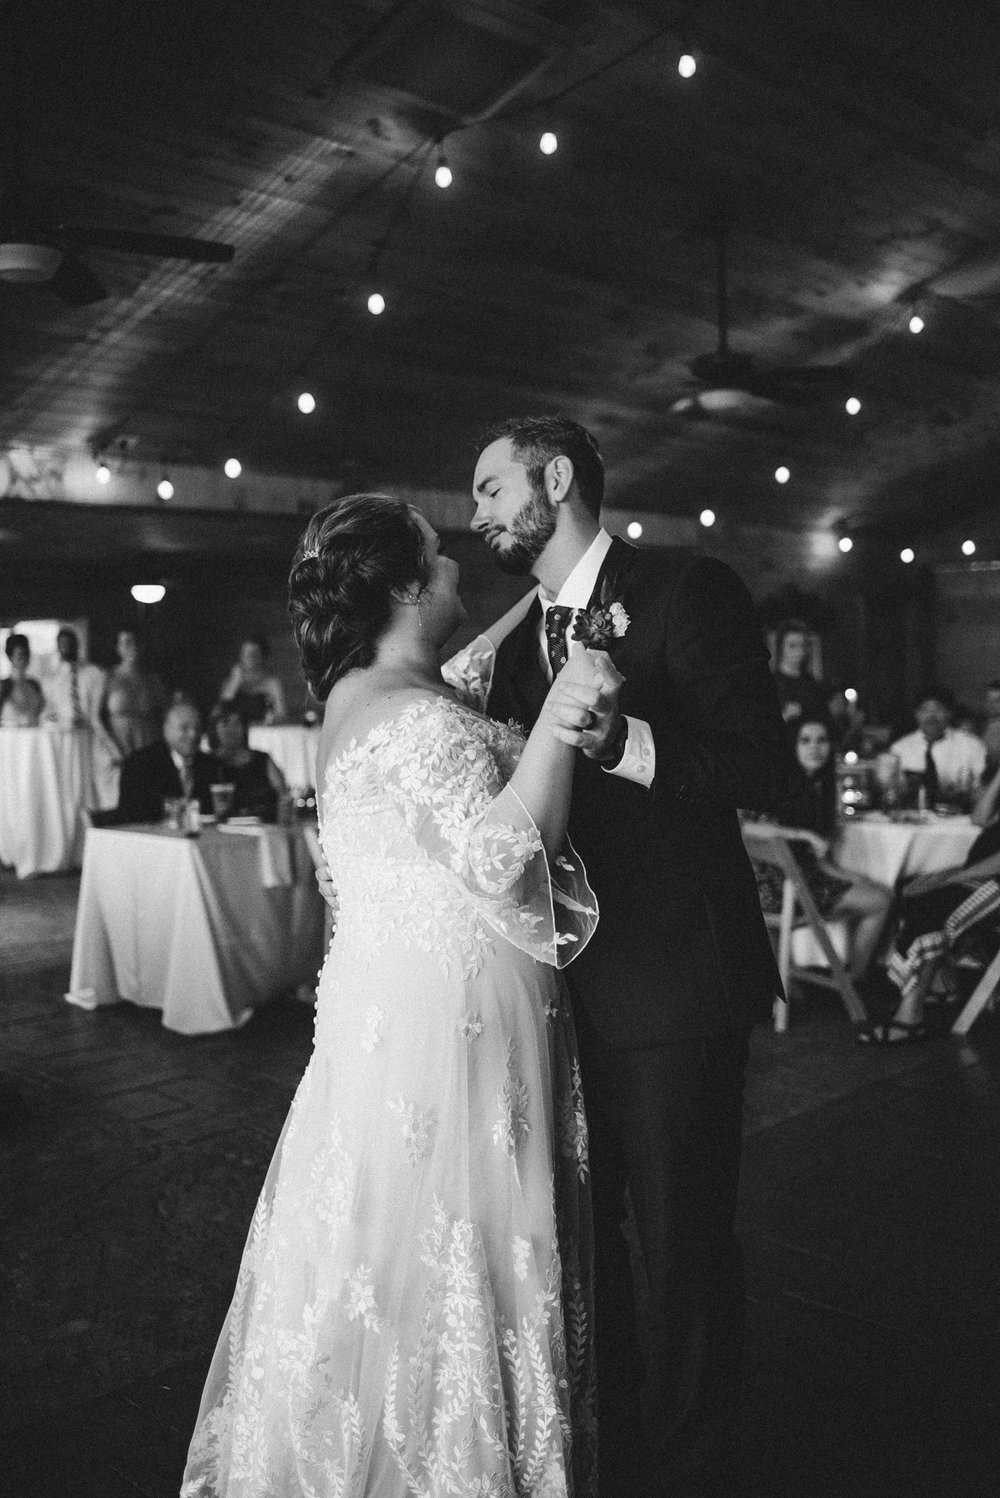 Jordan and Danielle - Shenandoah Woods Luray Virginia Wedding - Foggy Mountain and Forest Wedding - White Sails Creative Photography_119.JPG